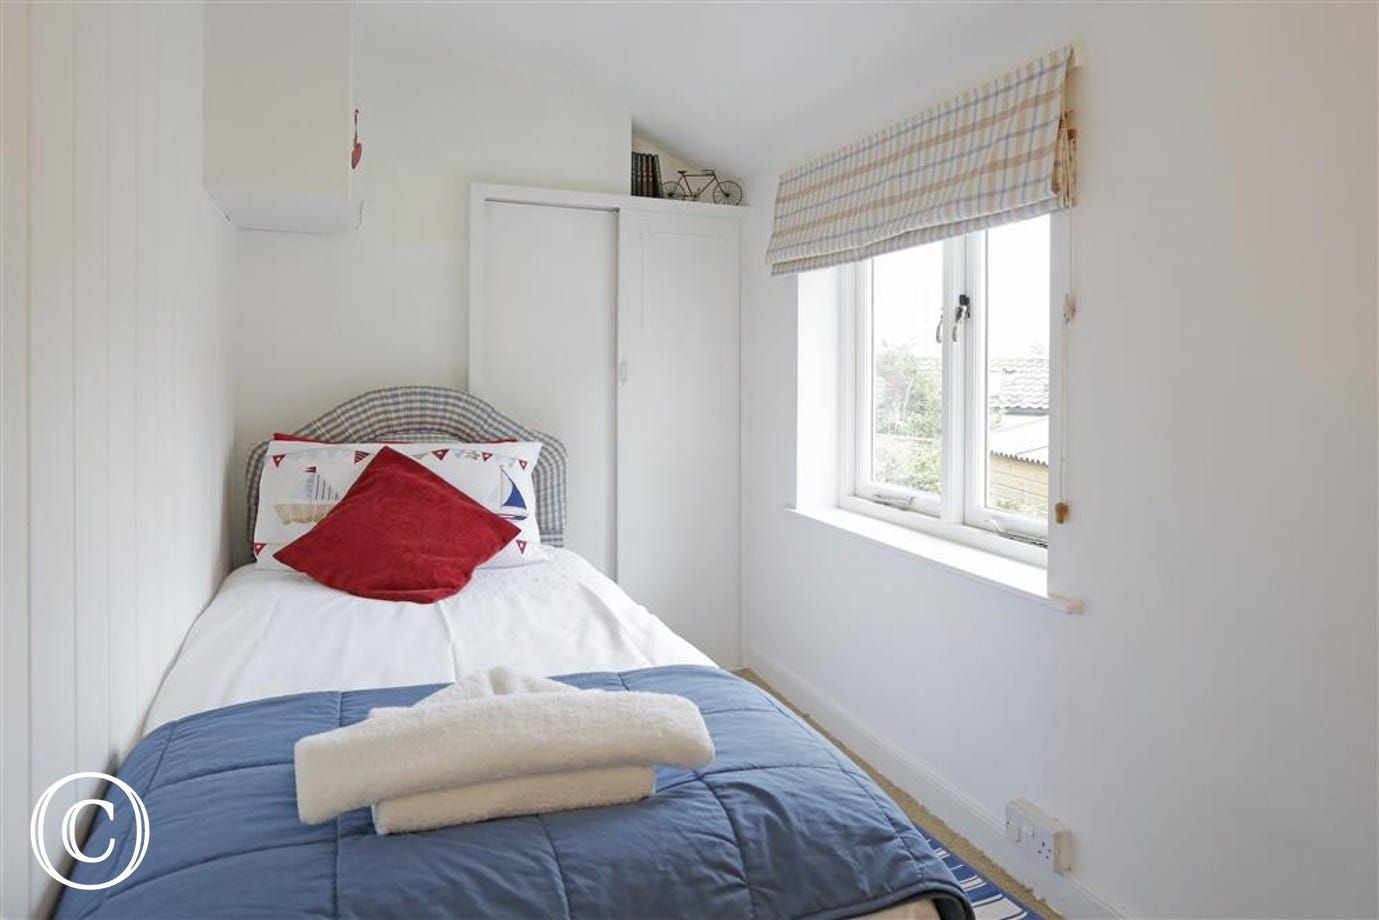 This cosy single bedded room is towards the rear of the property.